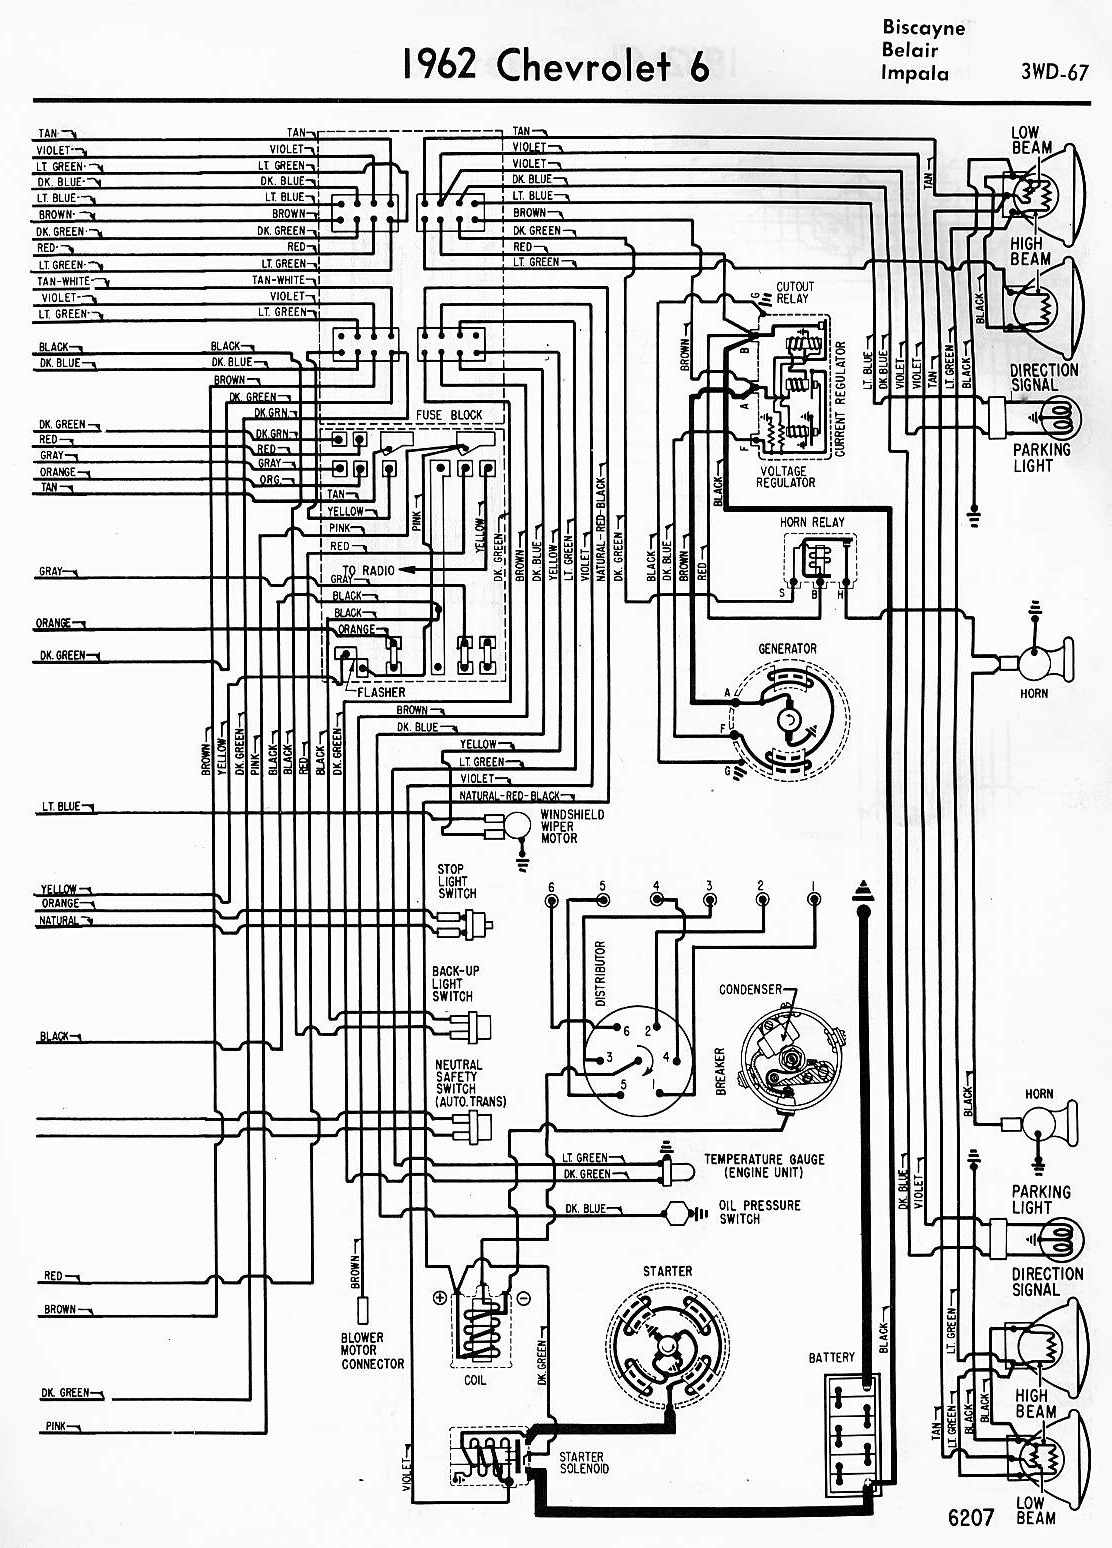 Electrical+Wiring+Diagram+Of+1964+Chevrolet+6 2011 impala wiring diagram 2005 impala ignition wiring diagram Universal Wiper Motor Wiring Diagram at fashall.co